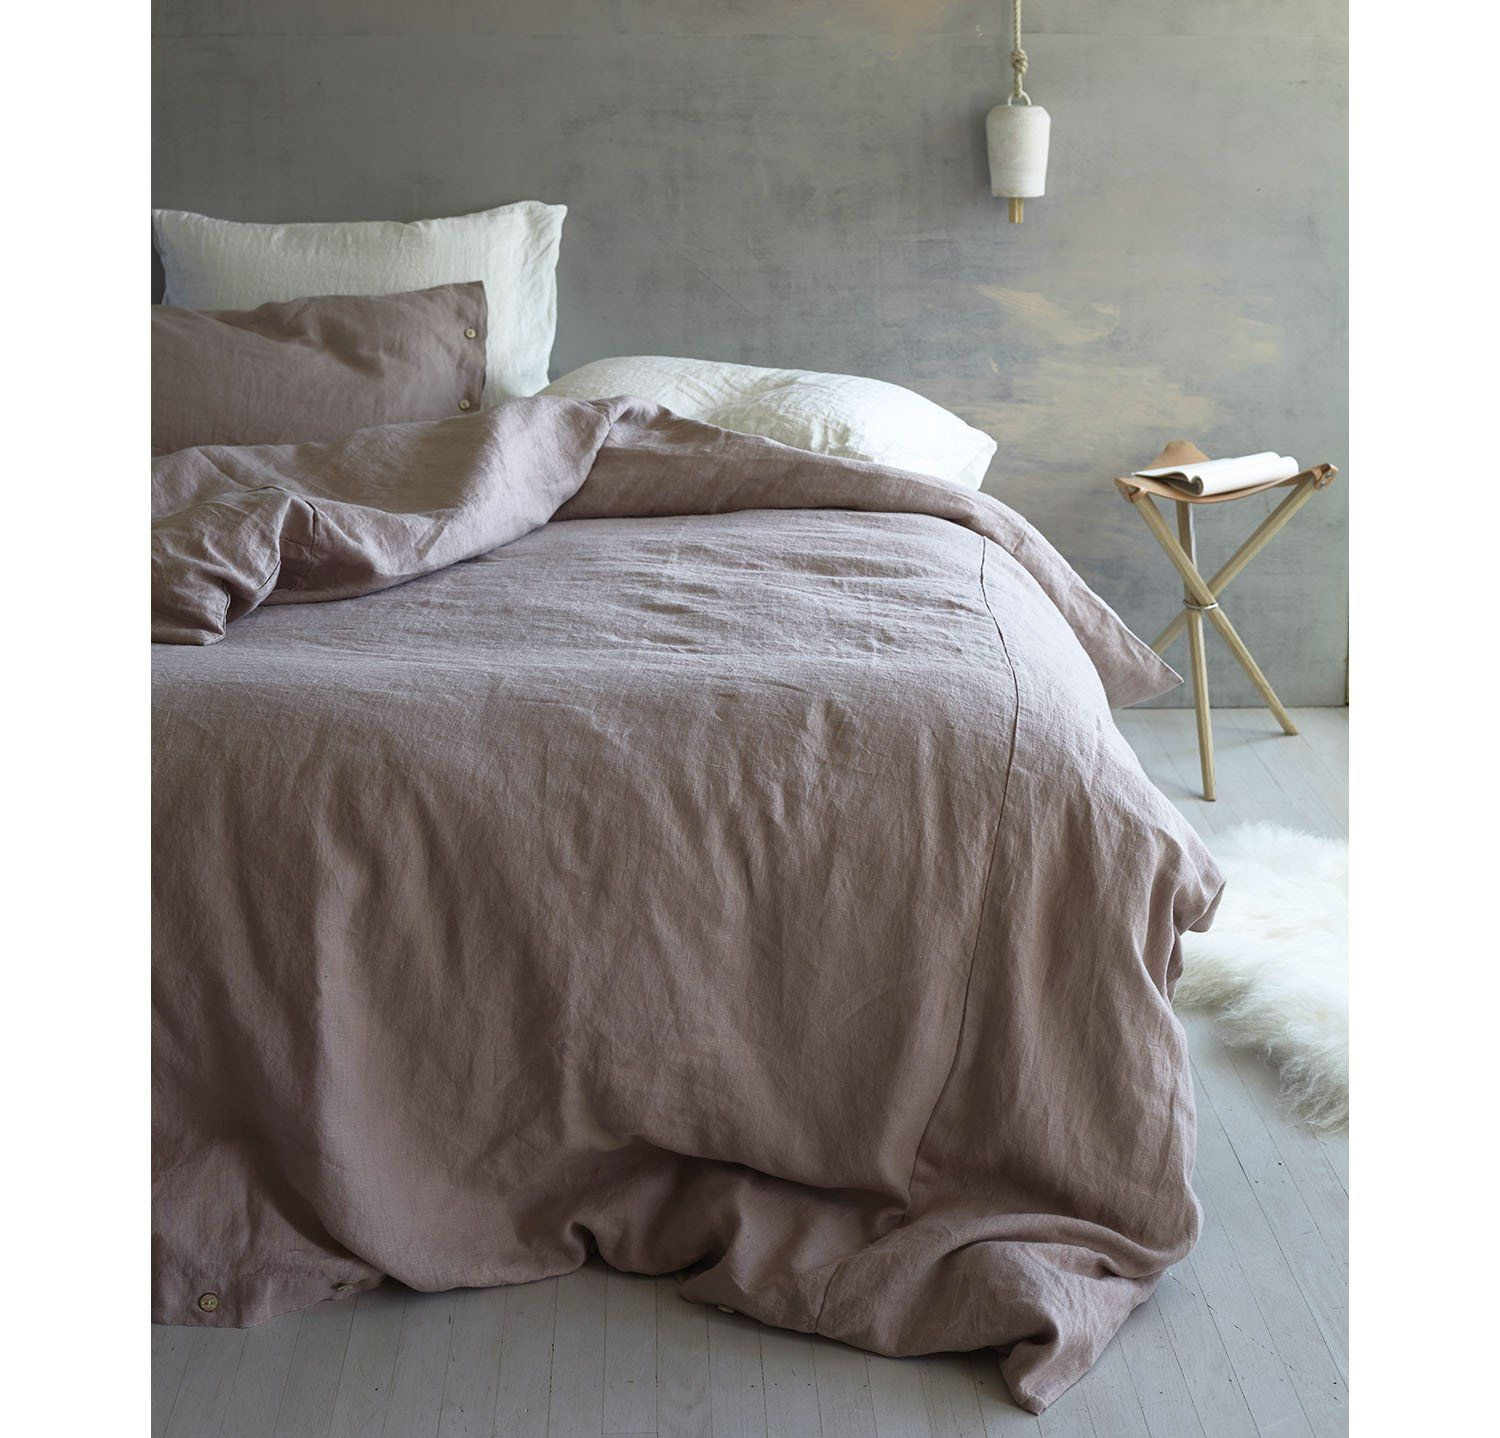 Rough Linen Bedding Bedsheets Orkney Duvet Cover Queen King Twin Bedroom Interior Dusk Or Pink Bed Linens Luxury Bed Linen Design White Linen Bedding